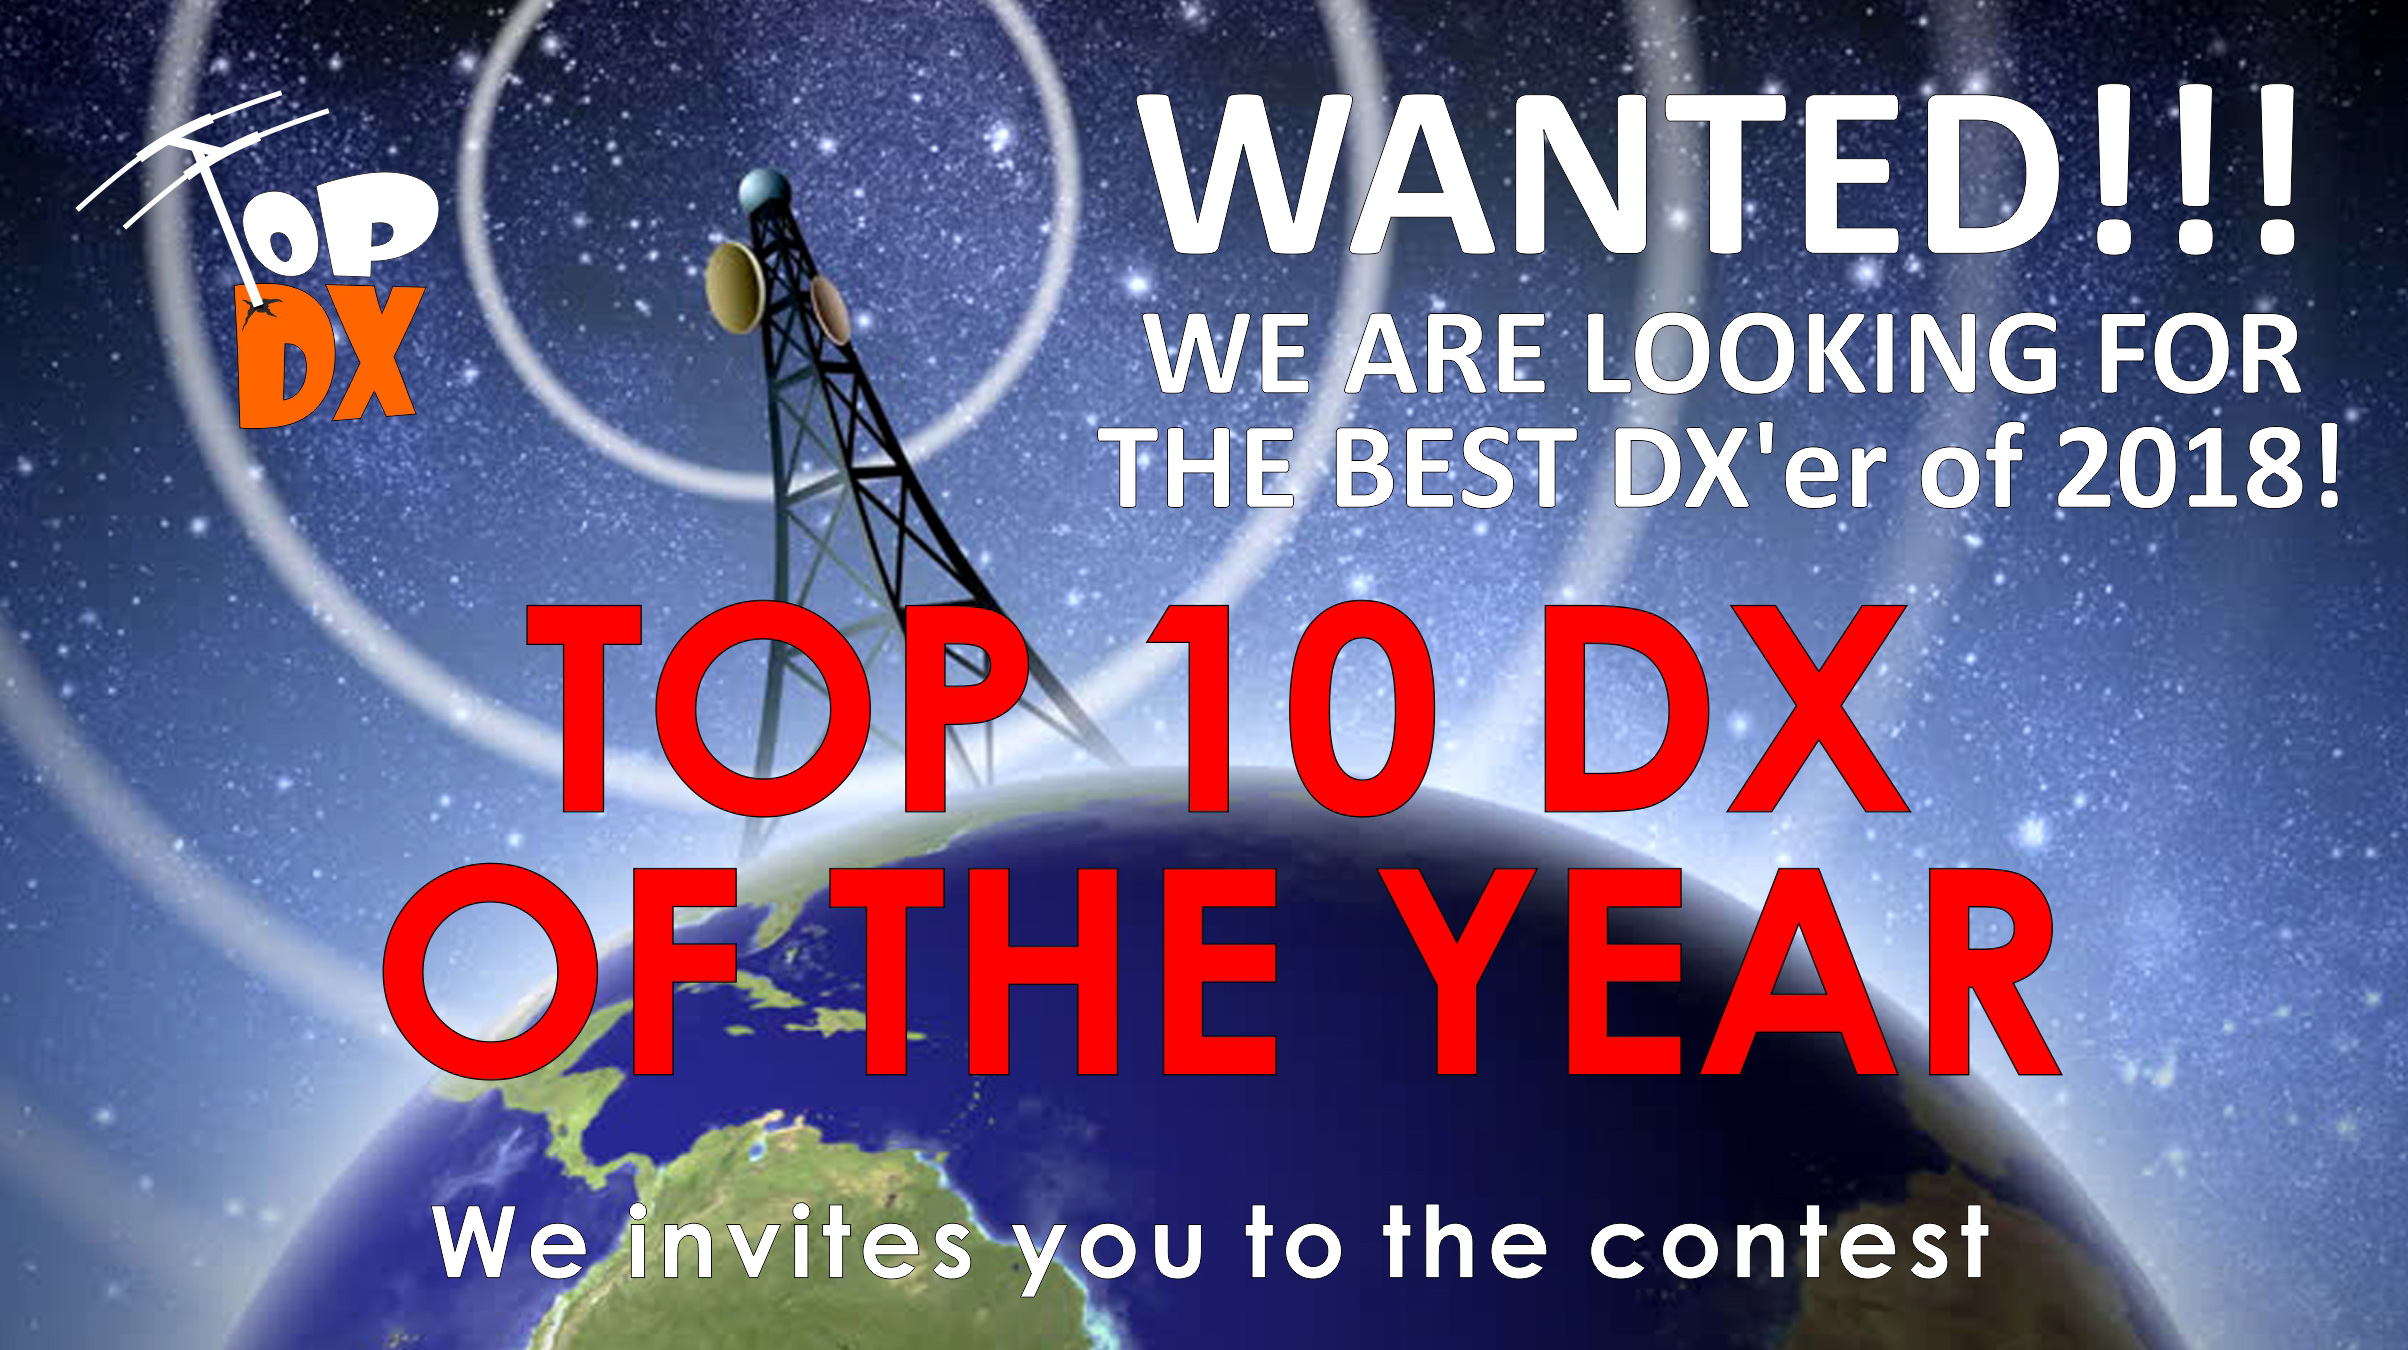 TOP 10 DX of the Year 2017